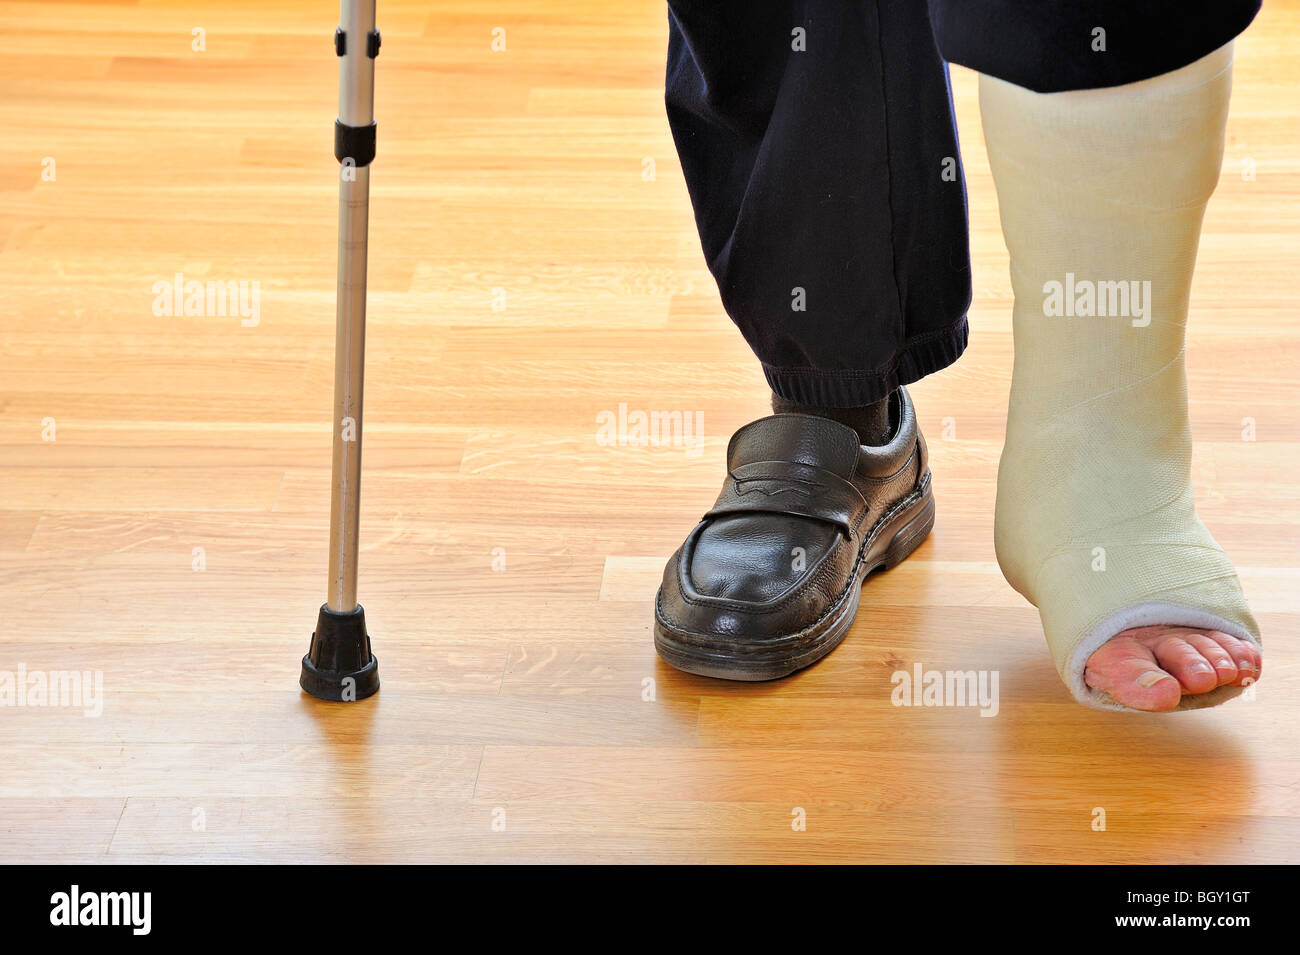 Detail of the legs and feet of a man with a broken leg, using crutches - Stock Image